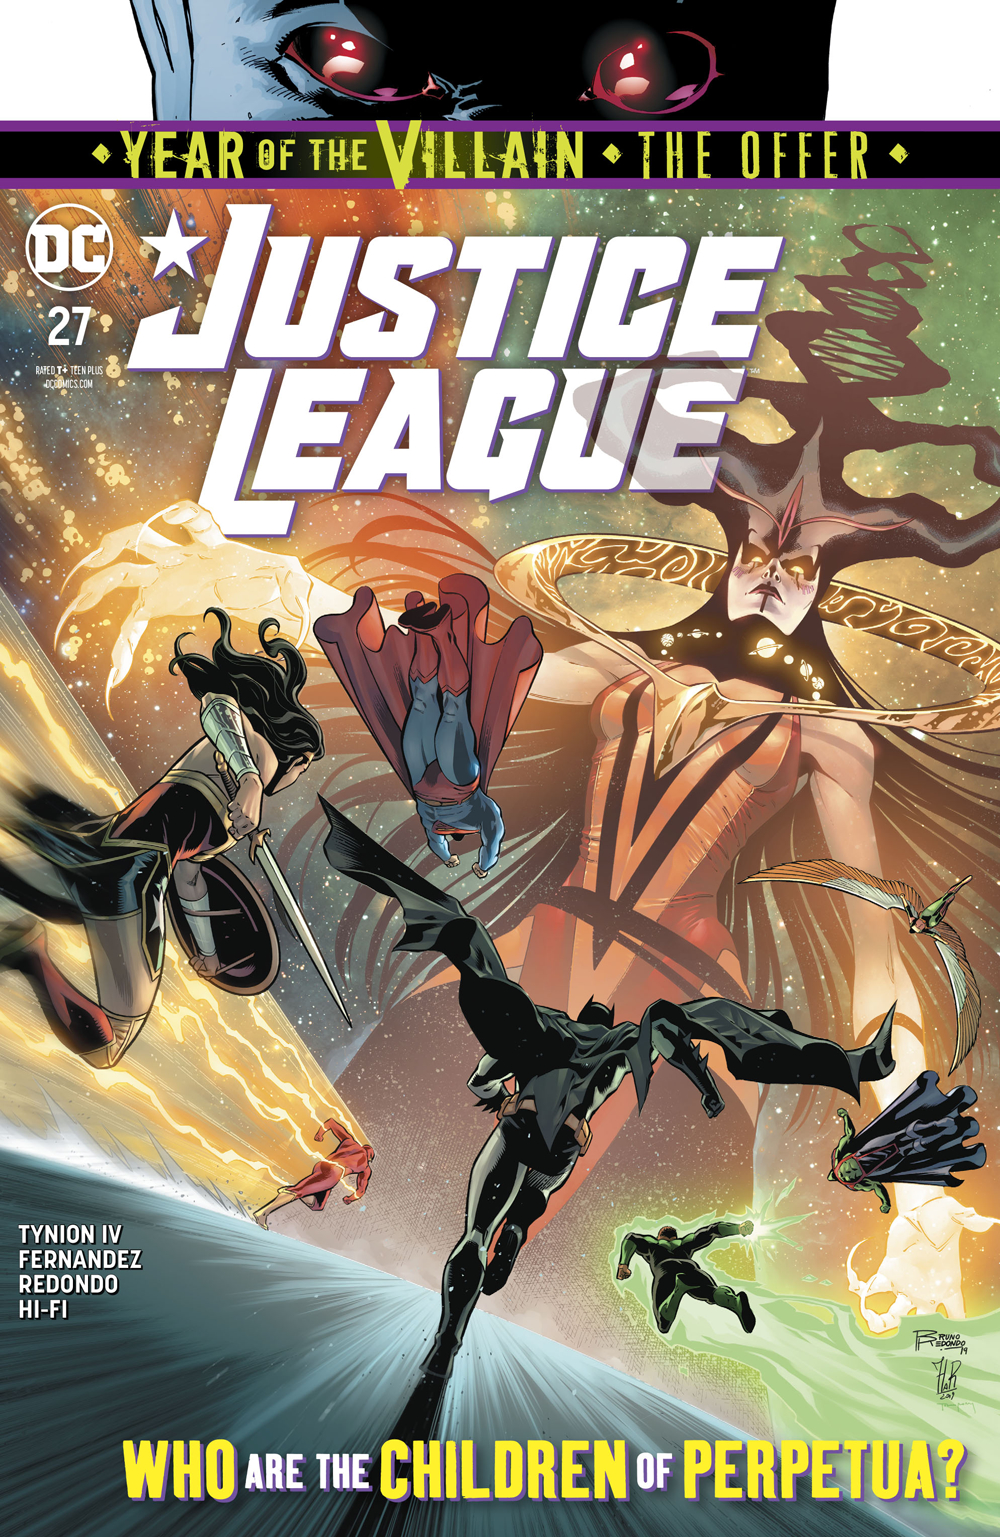 JUSTICE LEAGUE #27 YOTV VAR ED THE OFFER